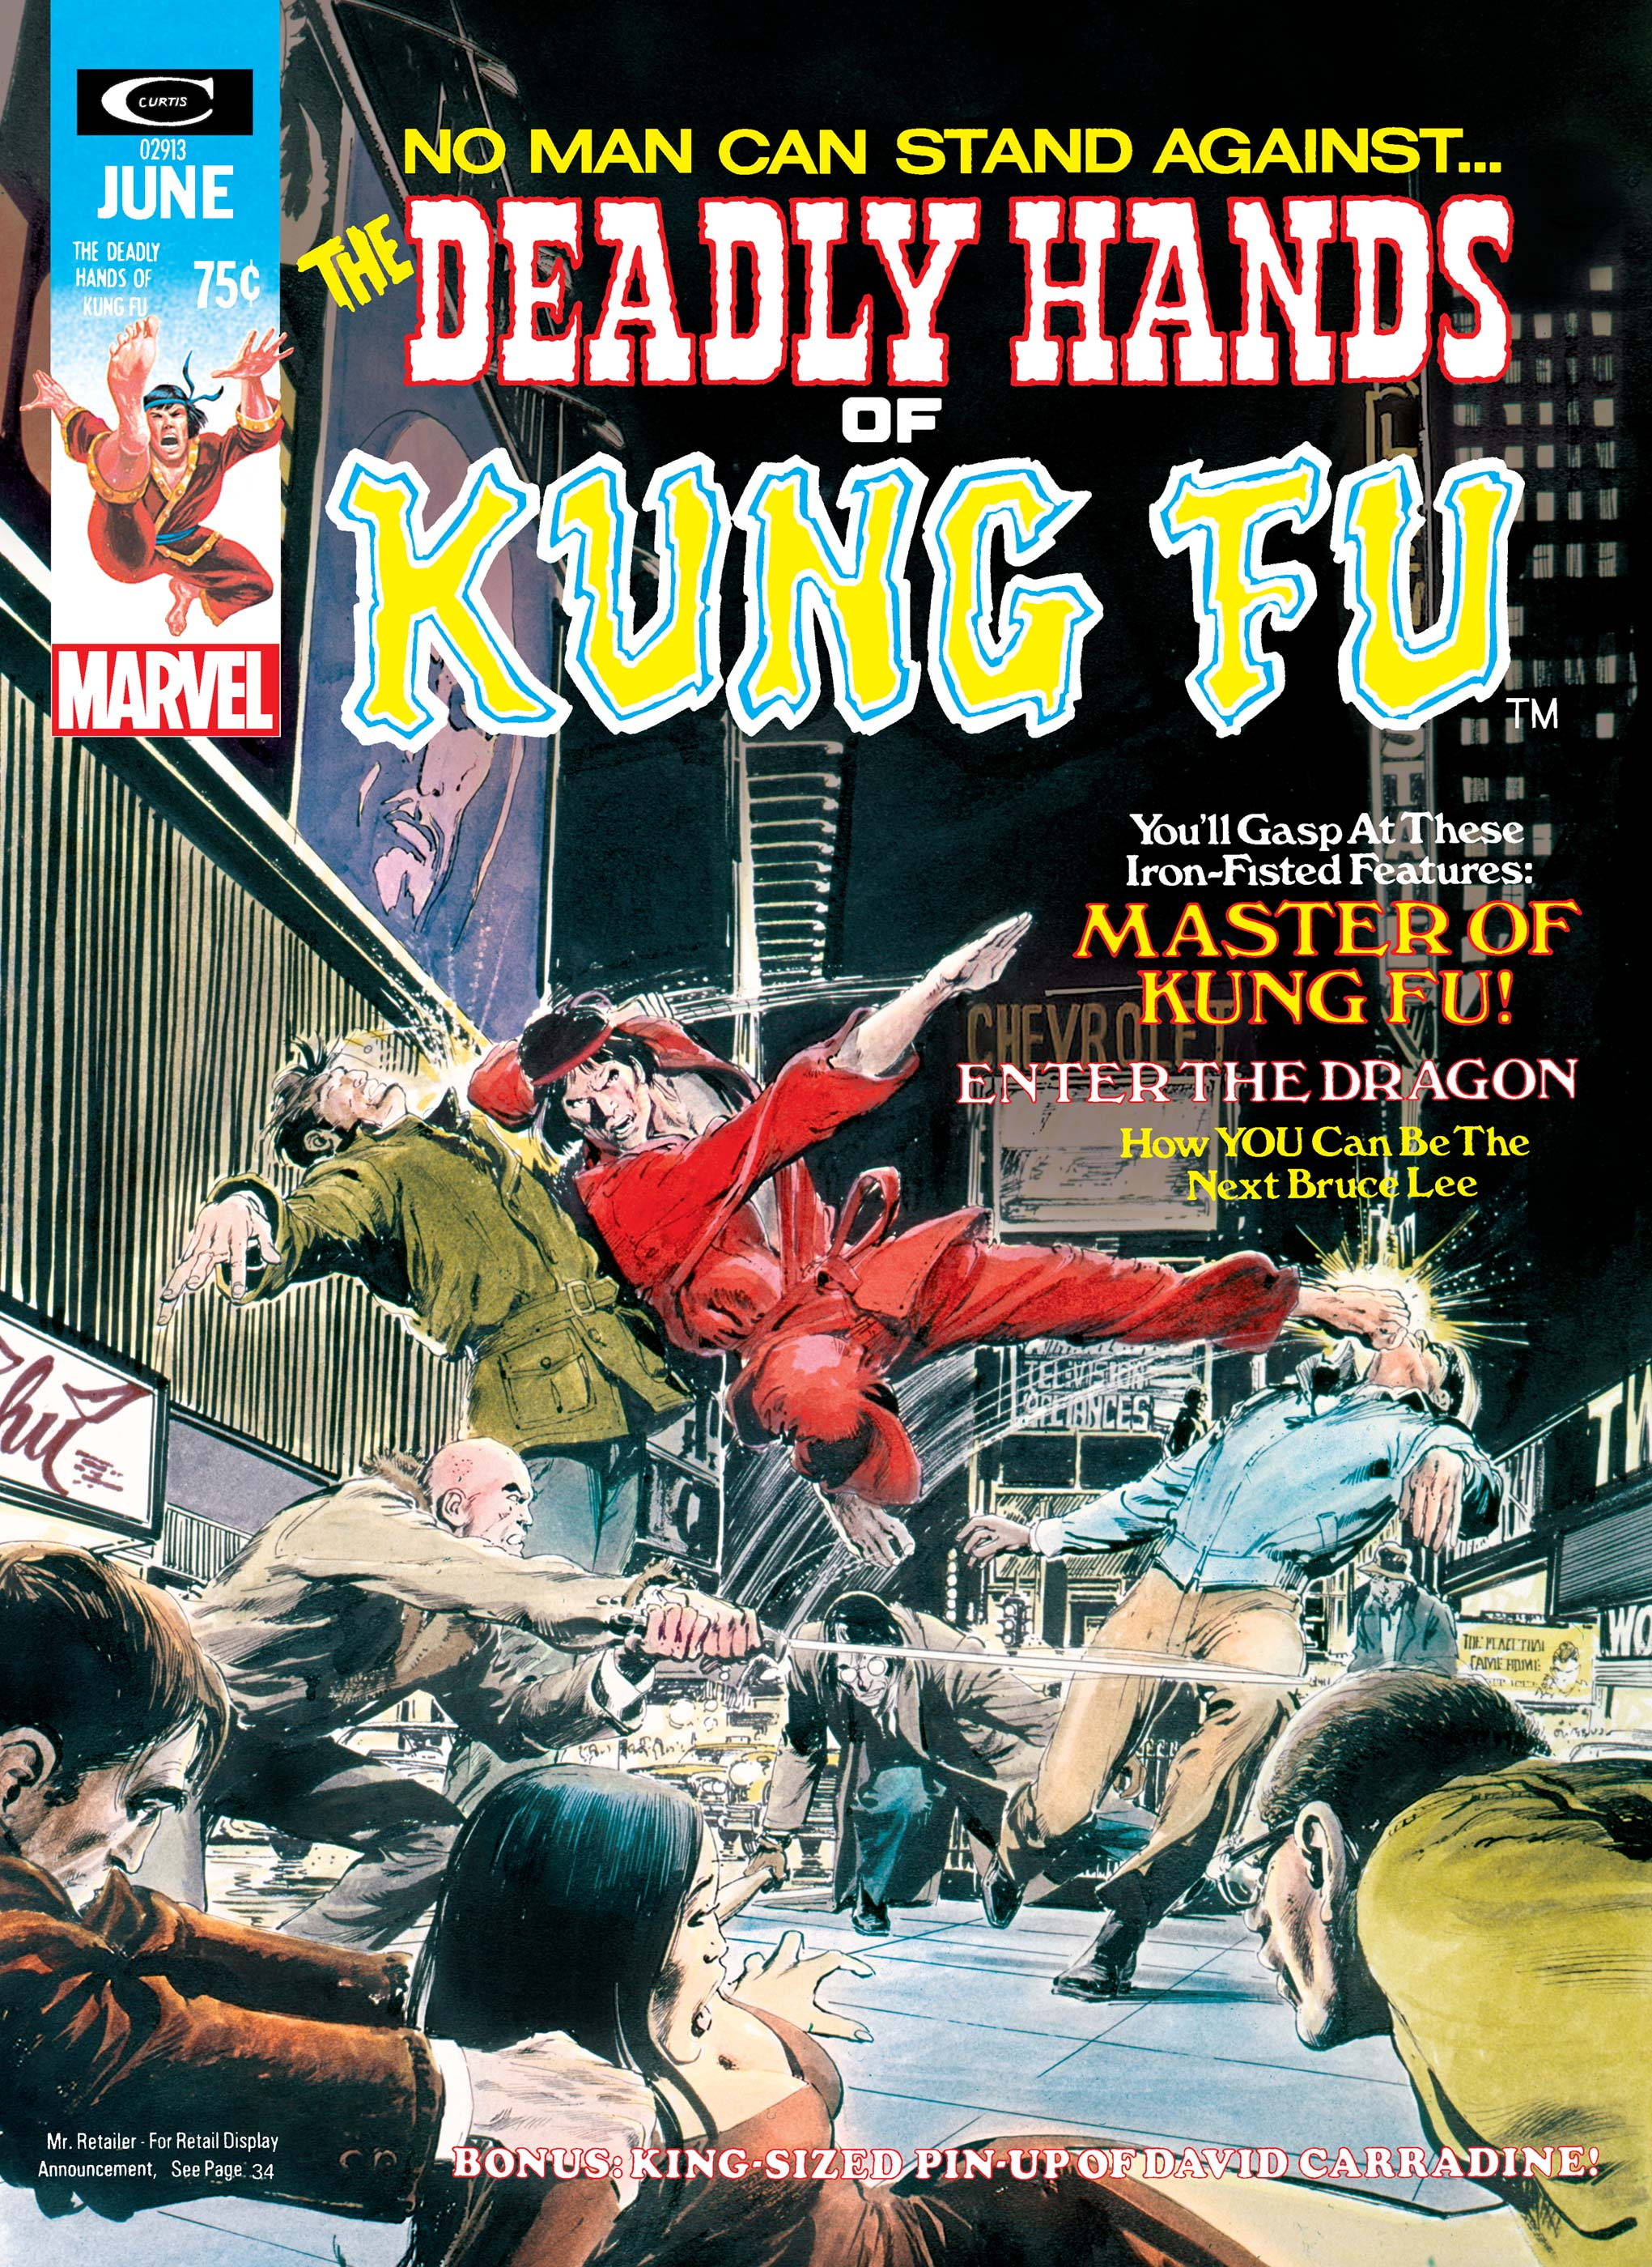 Deadly Hands of Kung Fu (1974) #2